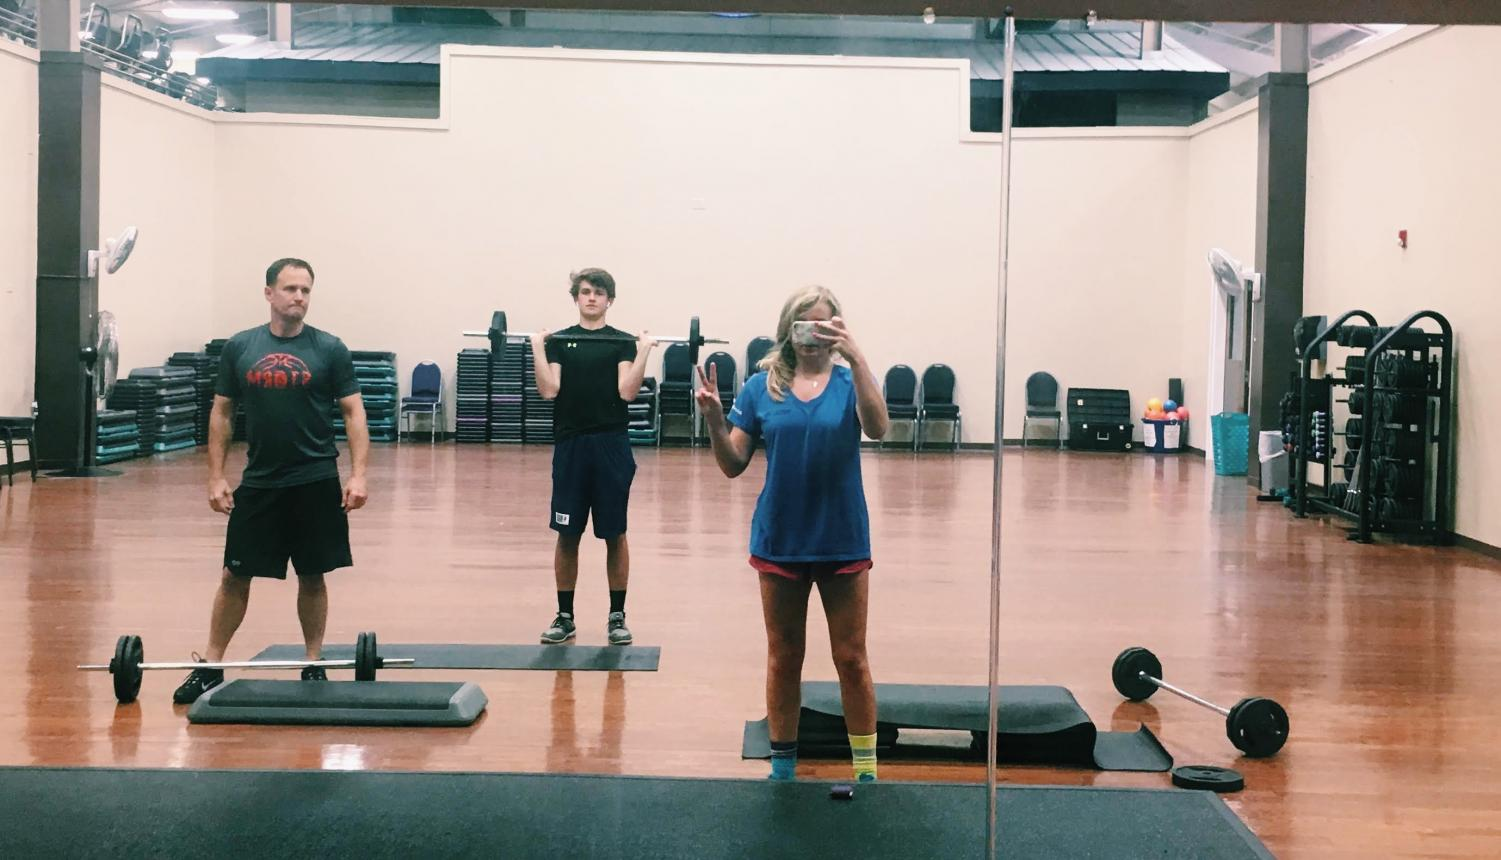 Me, my brother, and my dad preparing for Body Pump